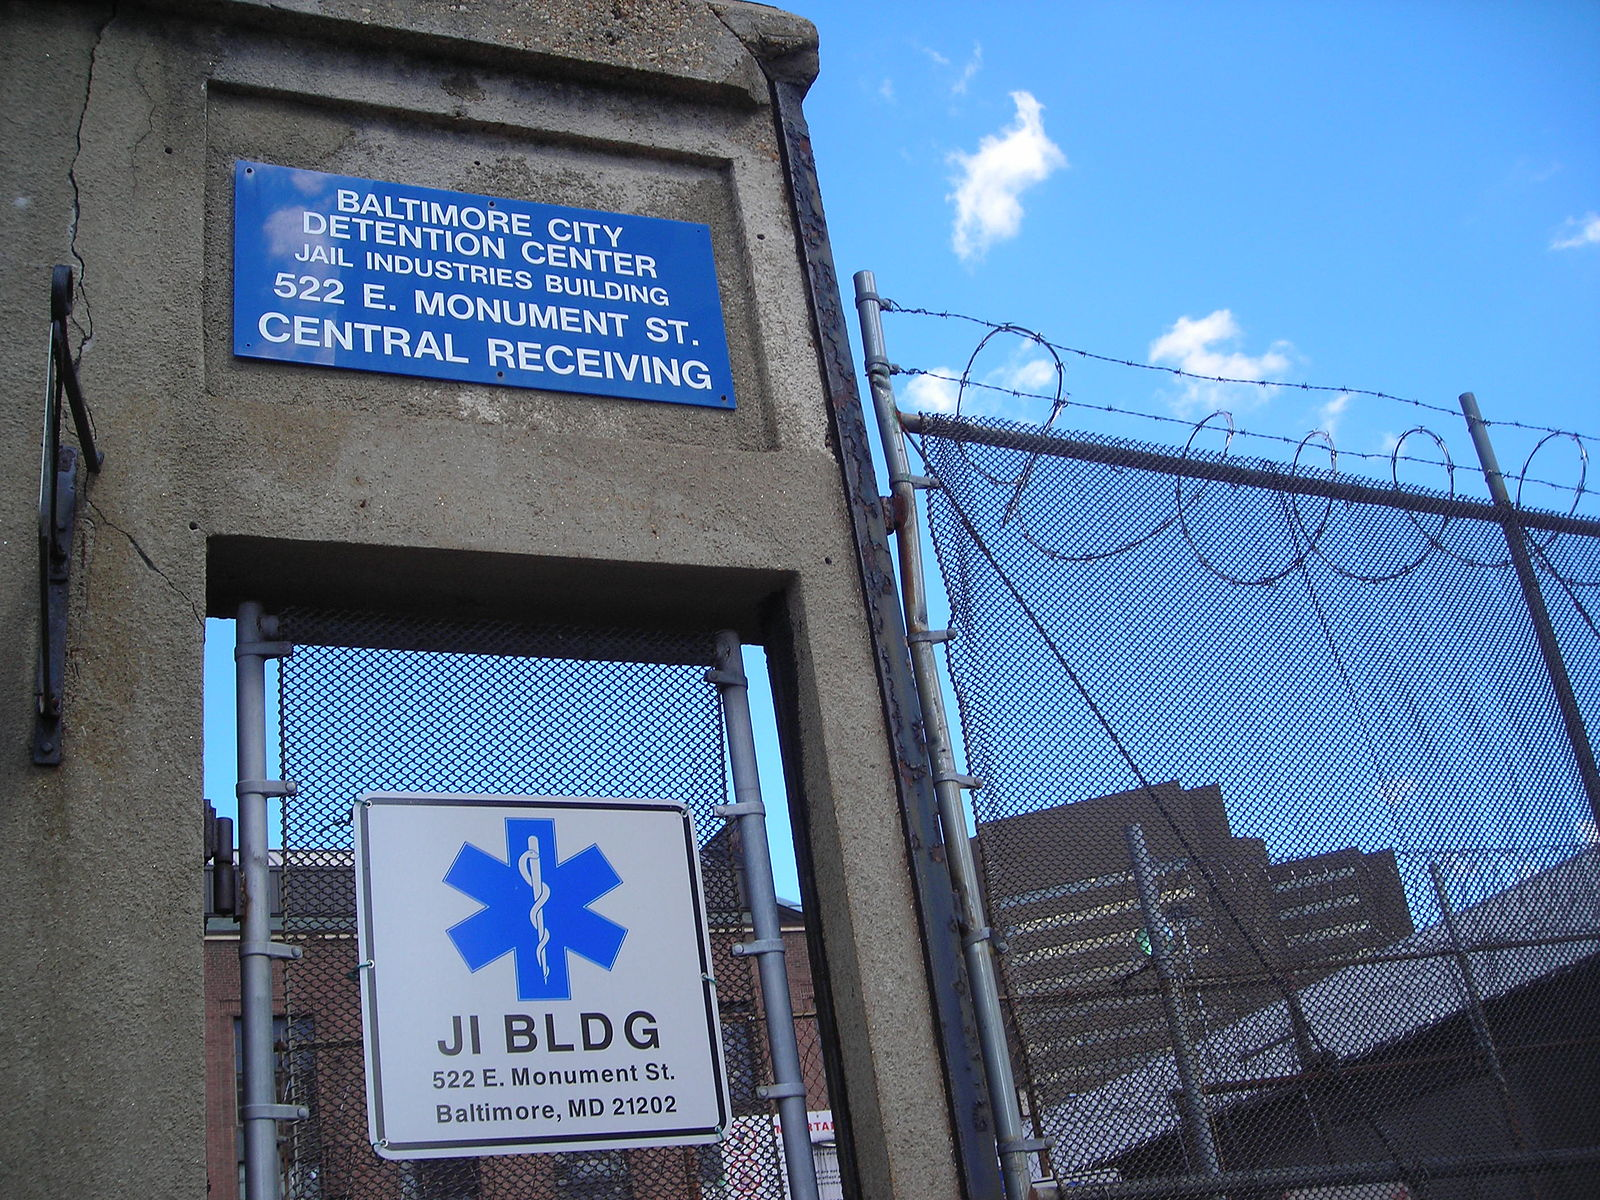 Baltimore Detention Center (Credit: Wikimedia Commons: groupuscule)